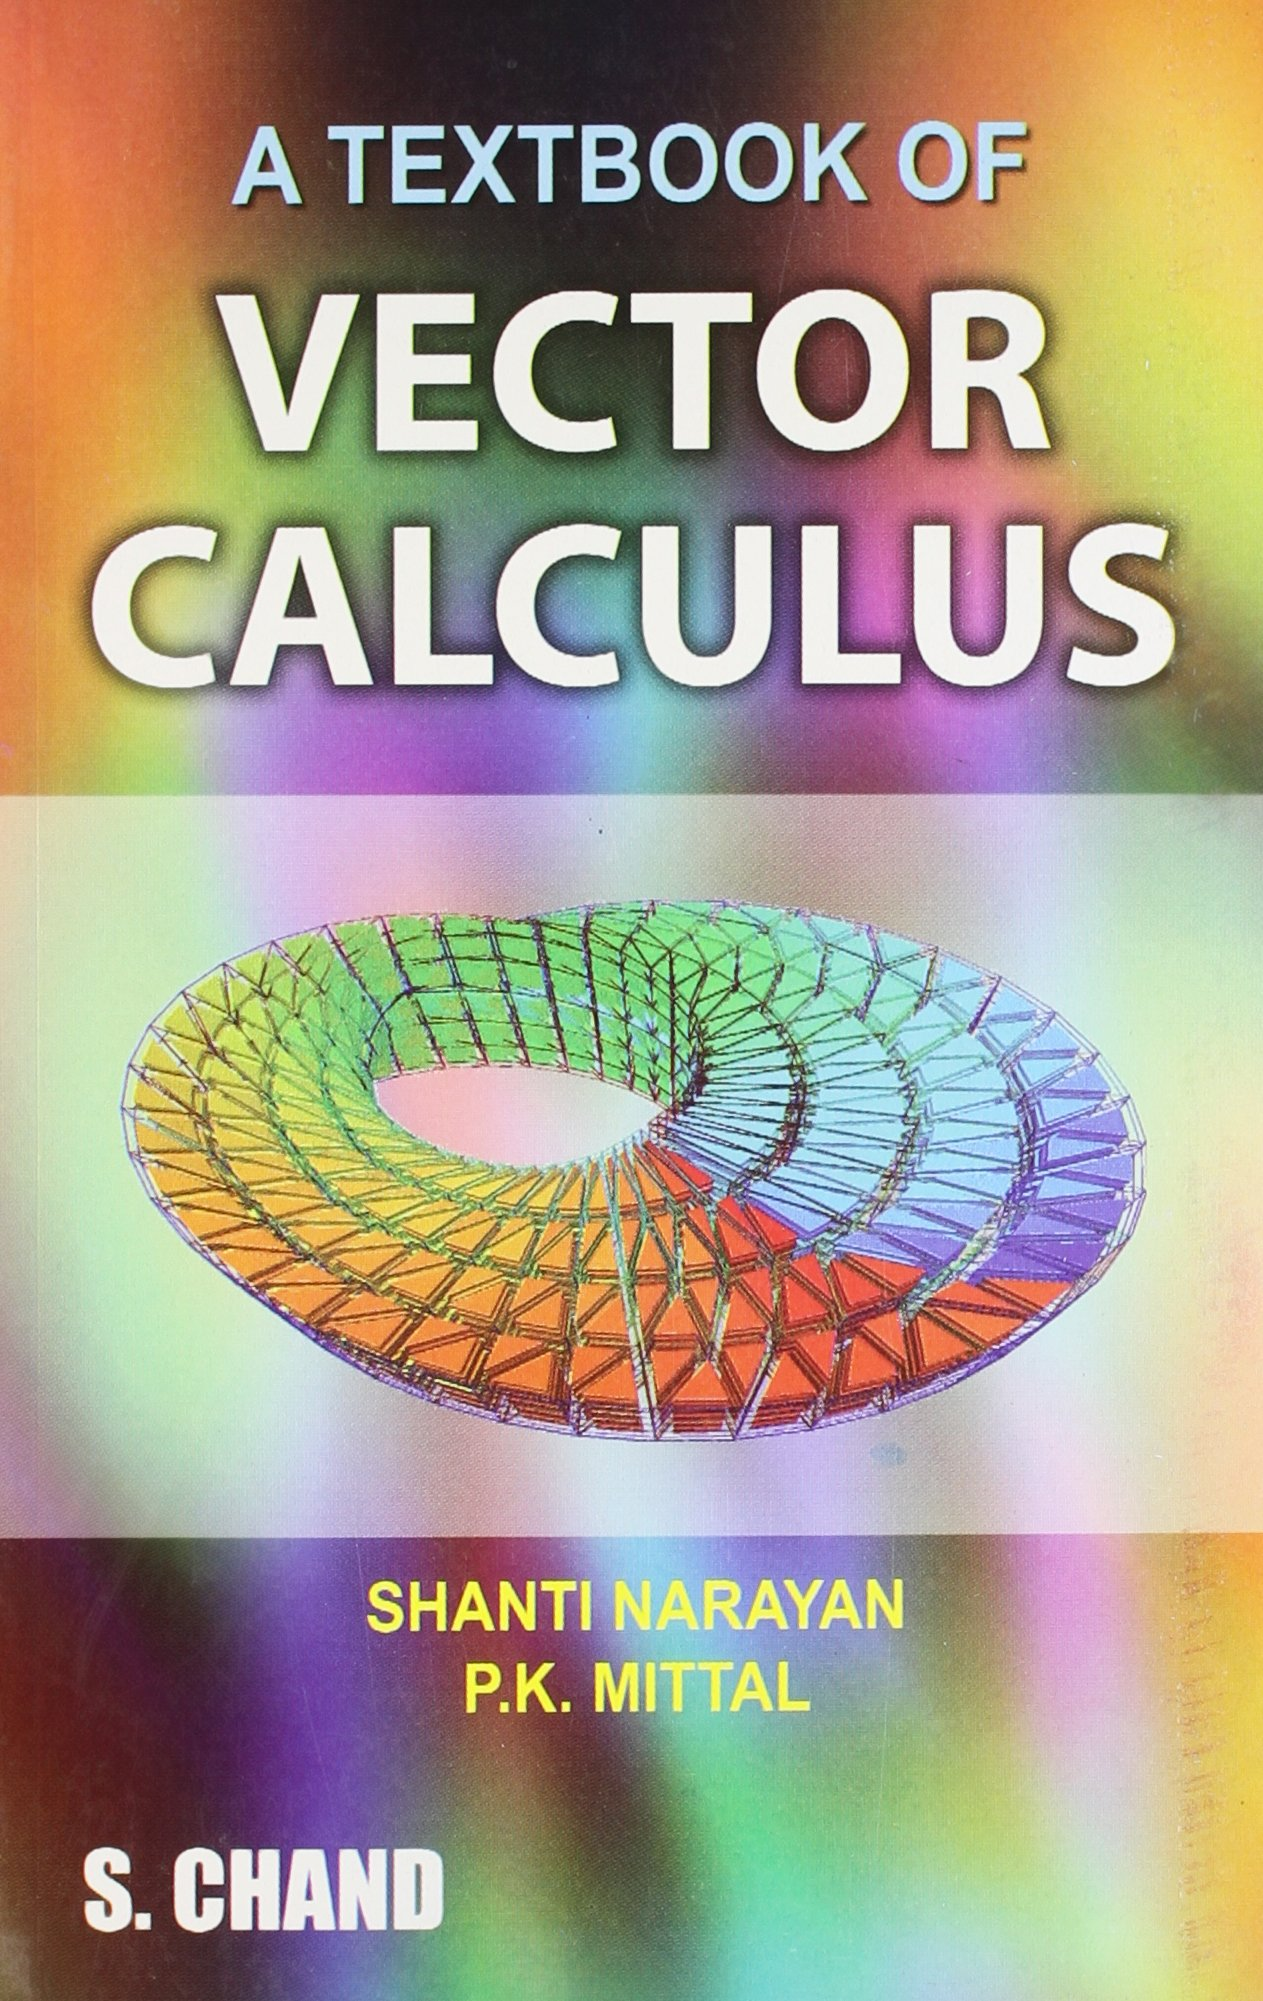 Differential Calculus by Shanti Narayan PDF Free Download